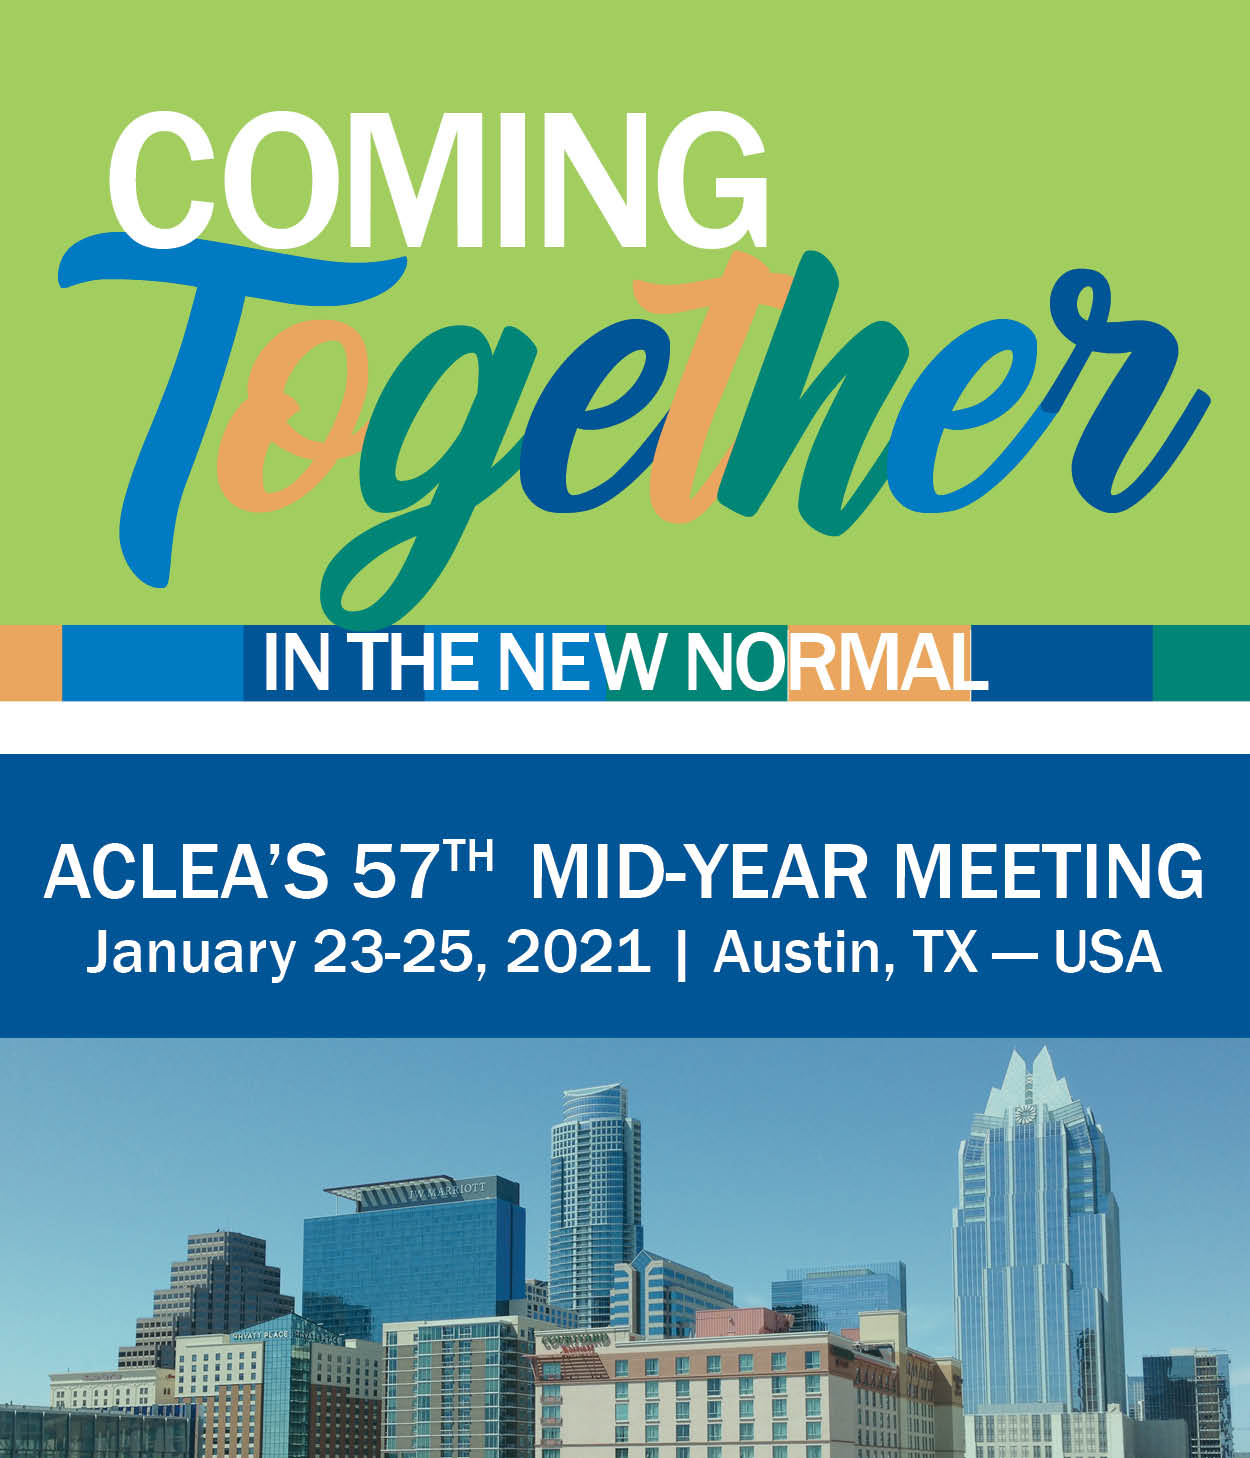 ACLEA's Mid-Year Meeting